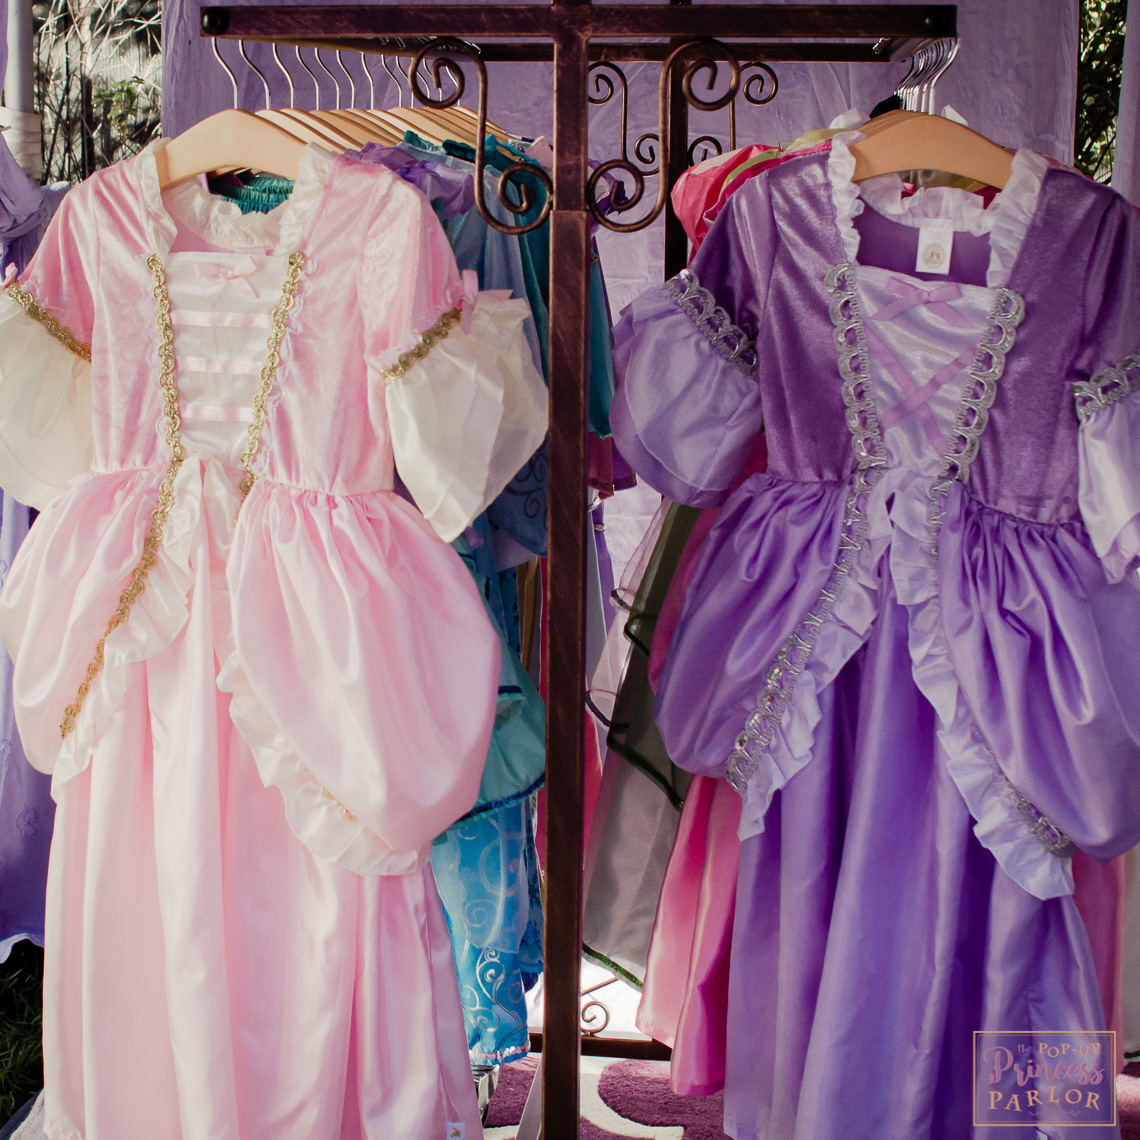 princess dress up party los angeles (6 of 19)-2.jpg